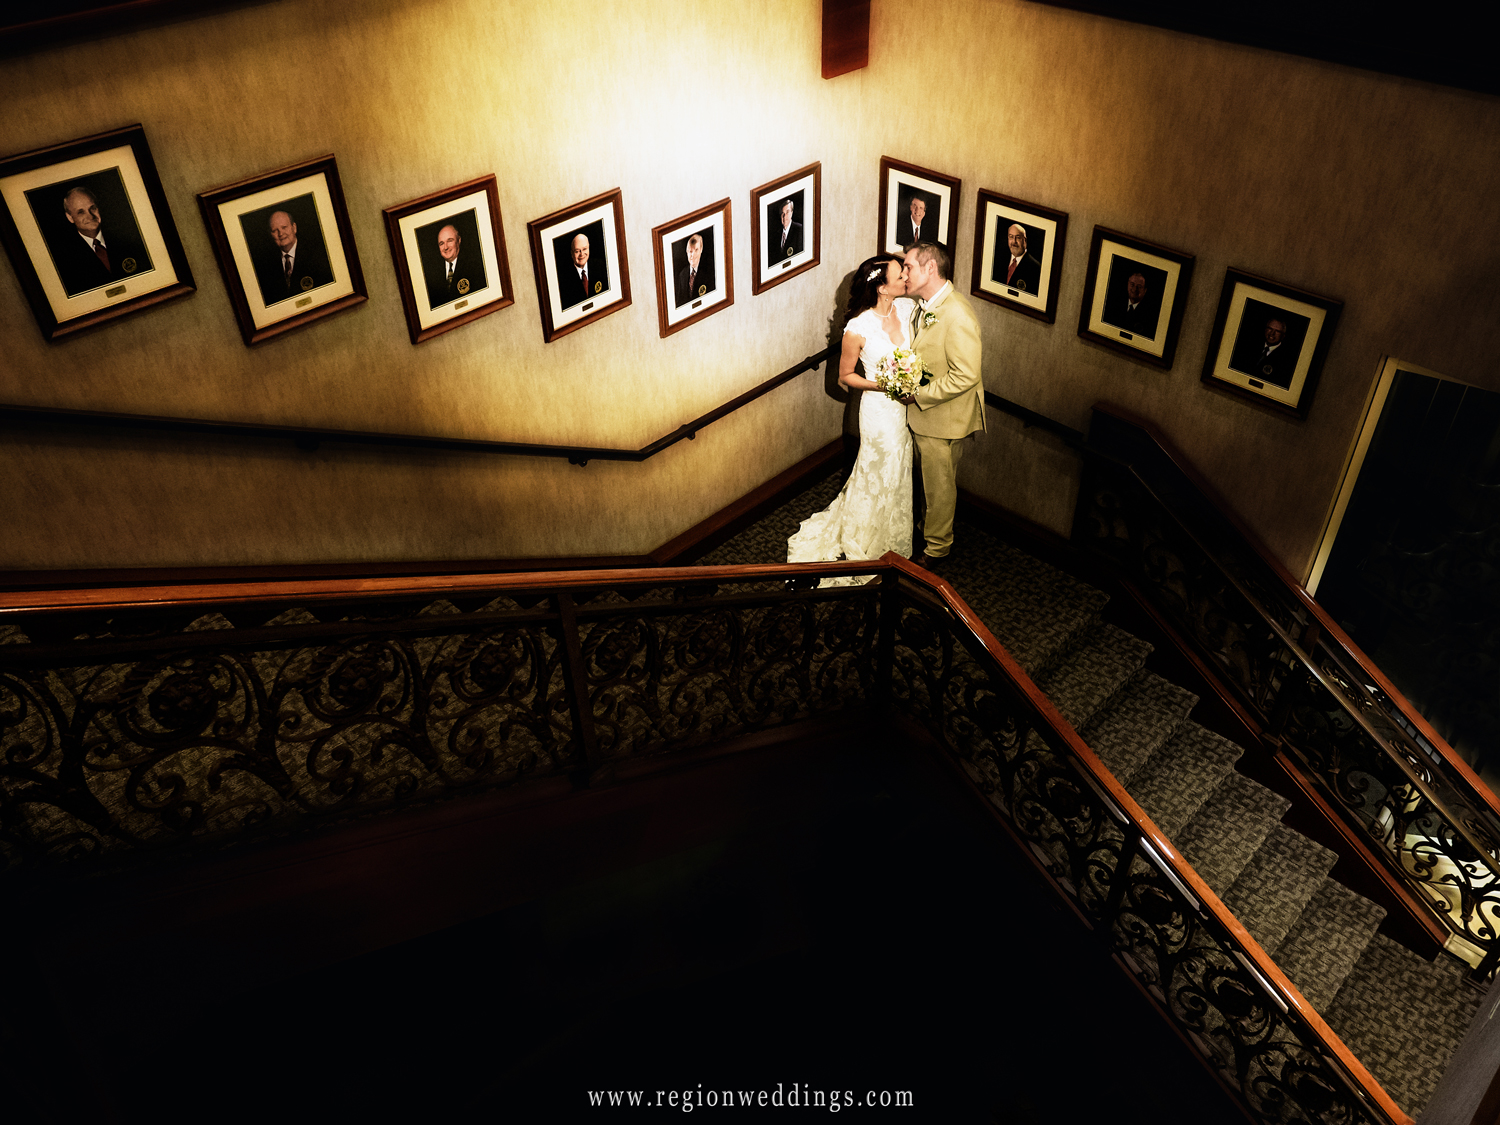 The bride and groom share a romantic kiss on the stairwell at Sand Creek Country Club in Chesterton, Indiana.